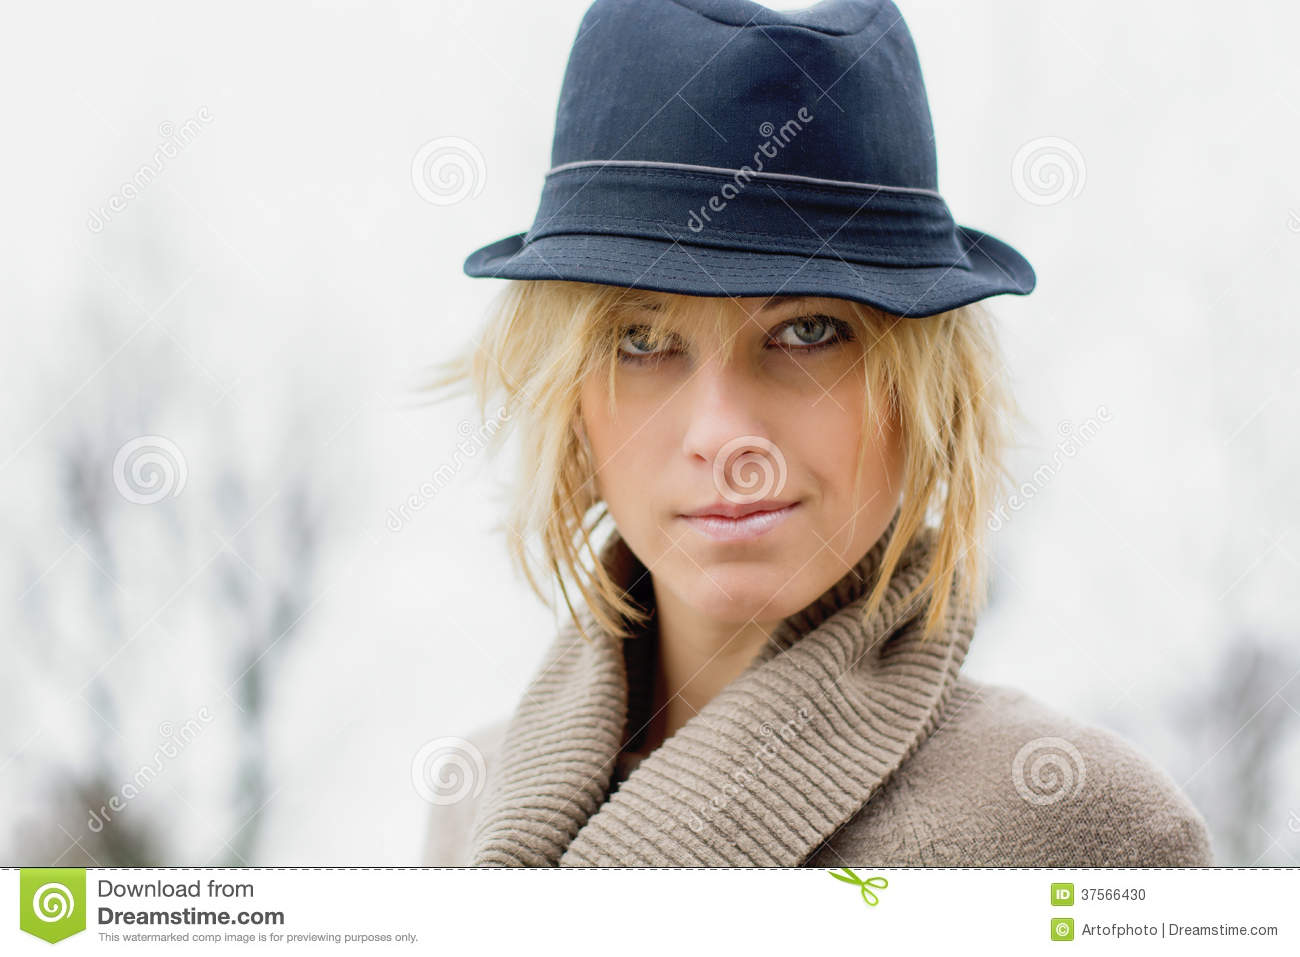 Pretty Blonde Girl With Fedora Hat Stock Photo - Image of female ... bfac15e7bfe